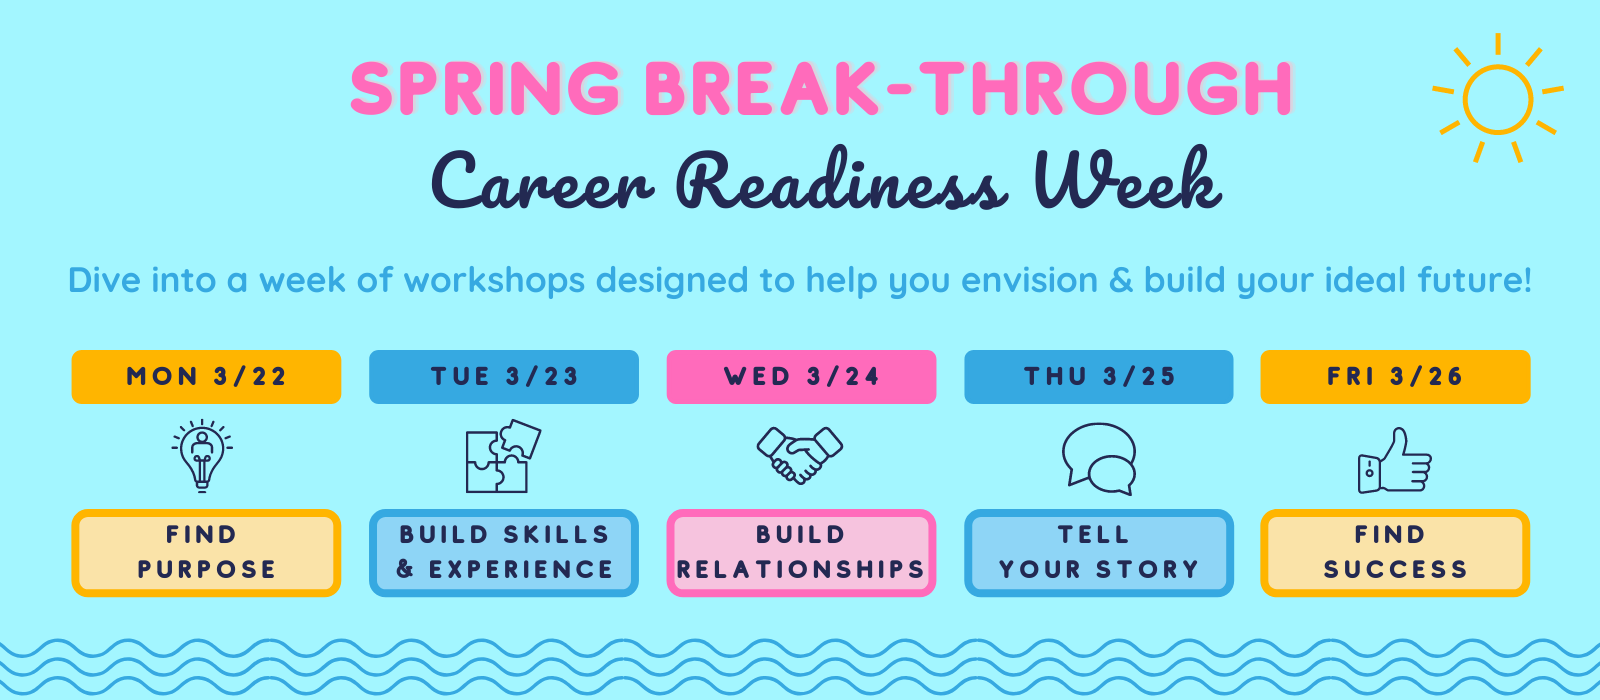 Spring Break-Through: Career Readiness Week header image